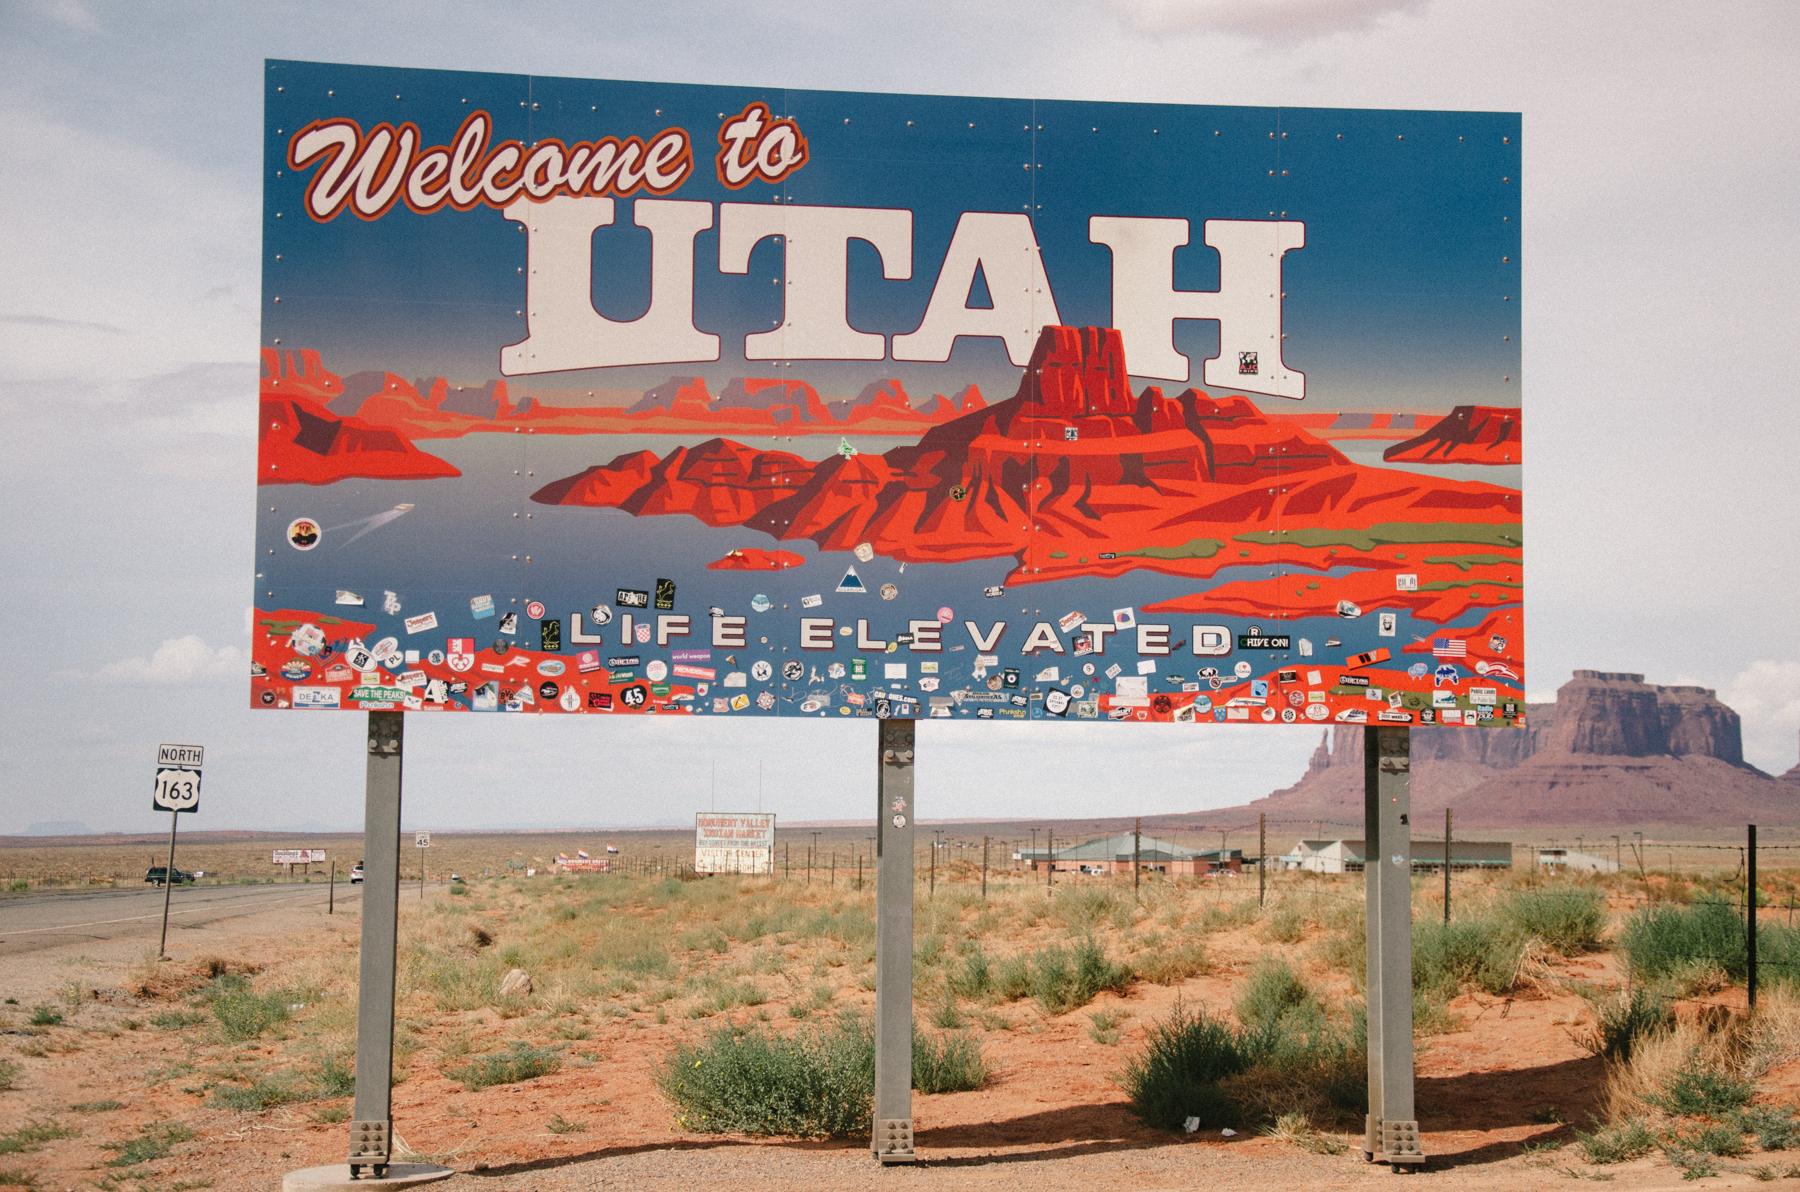 Utah has the best welcome sign of all the states we drove through.